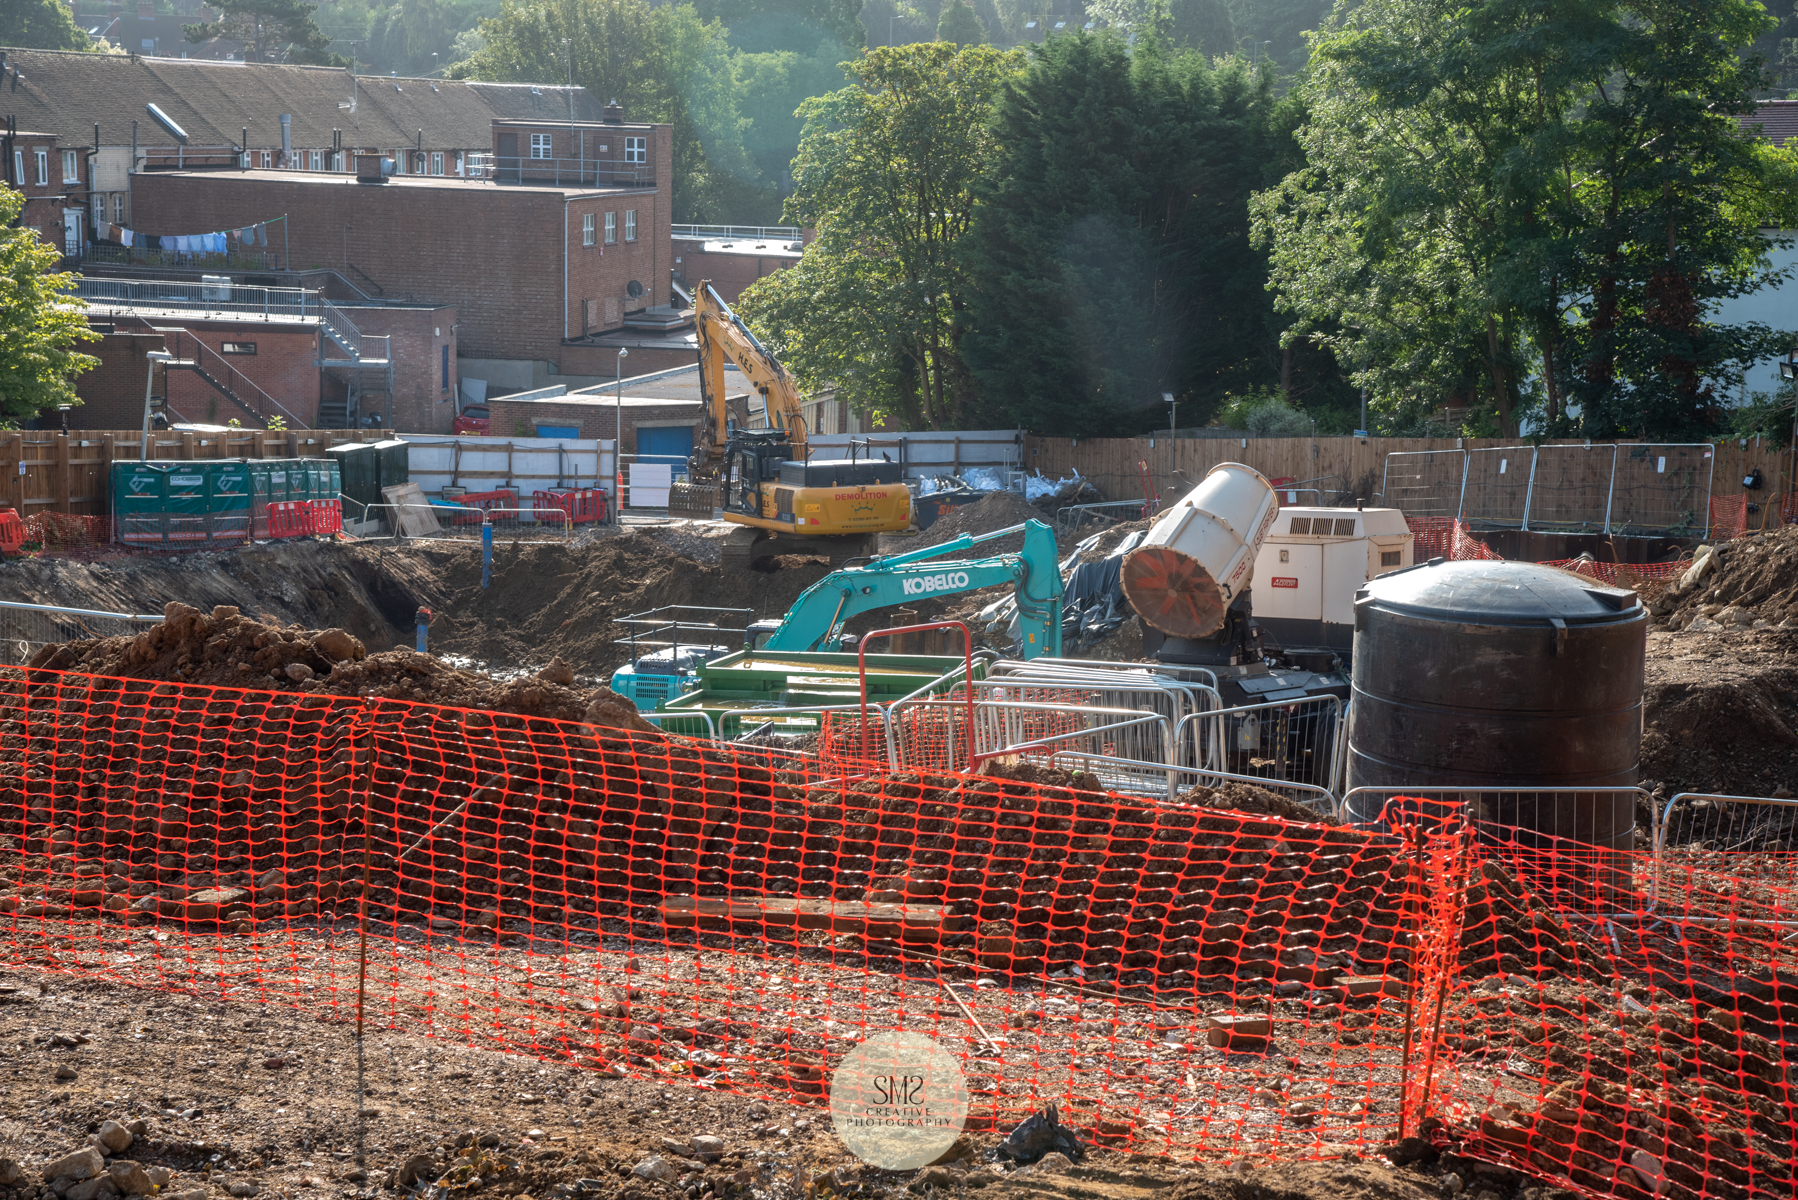 Looking towards what will be the underground car park.